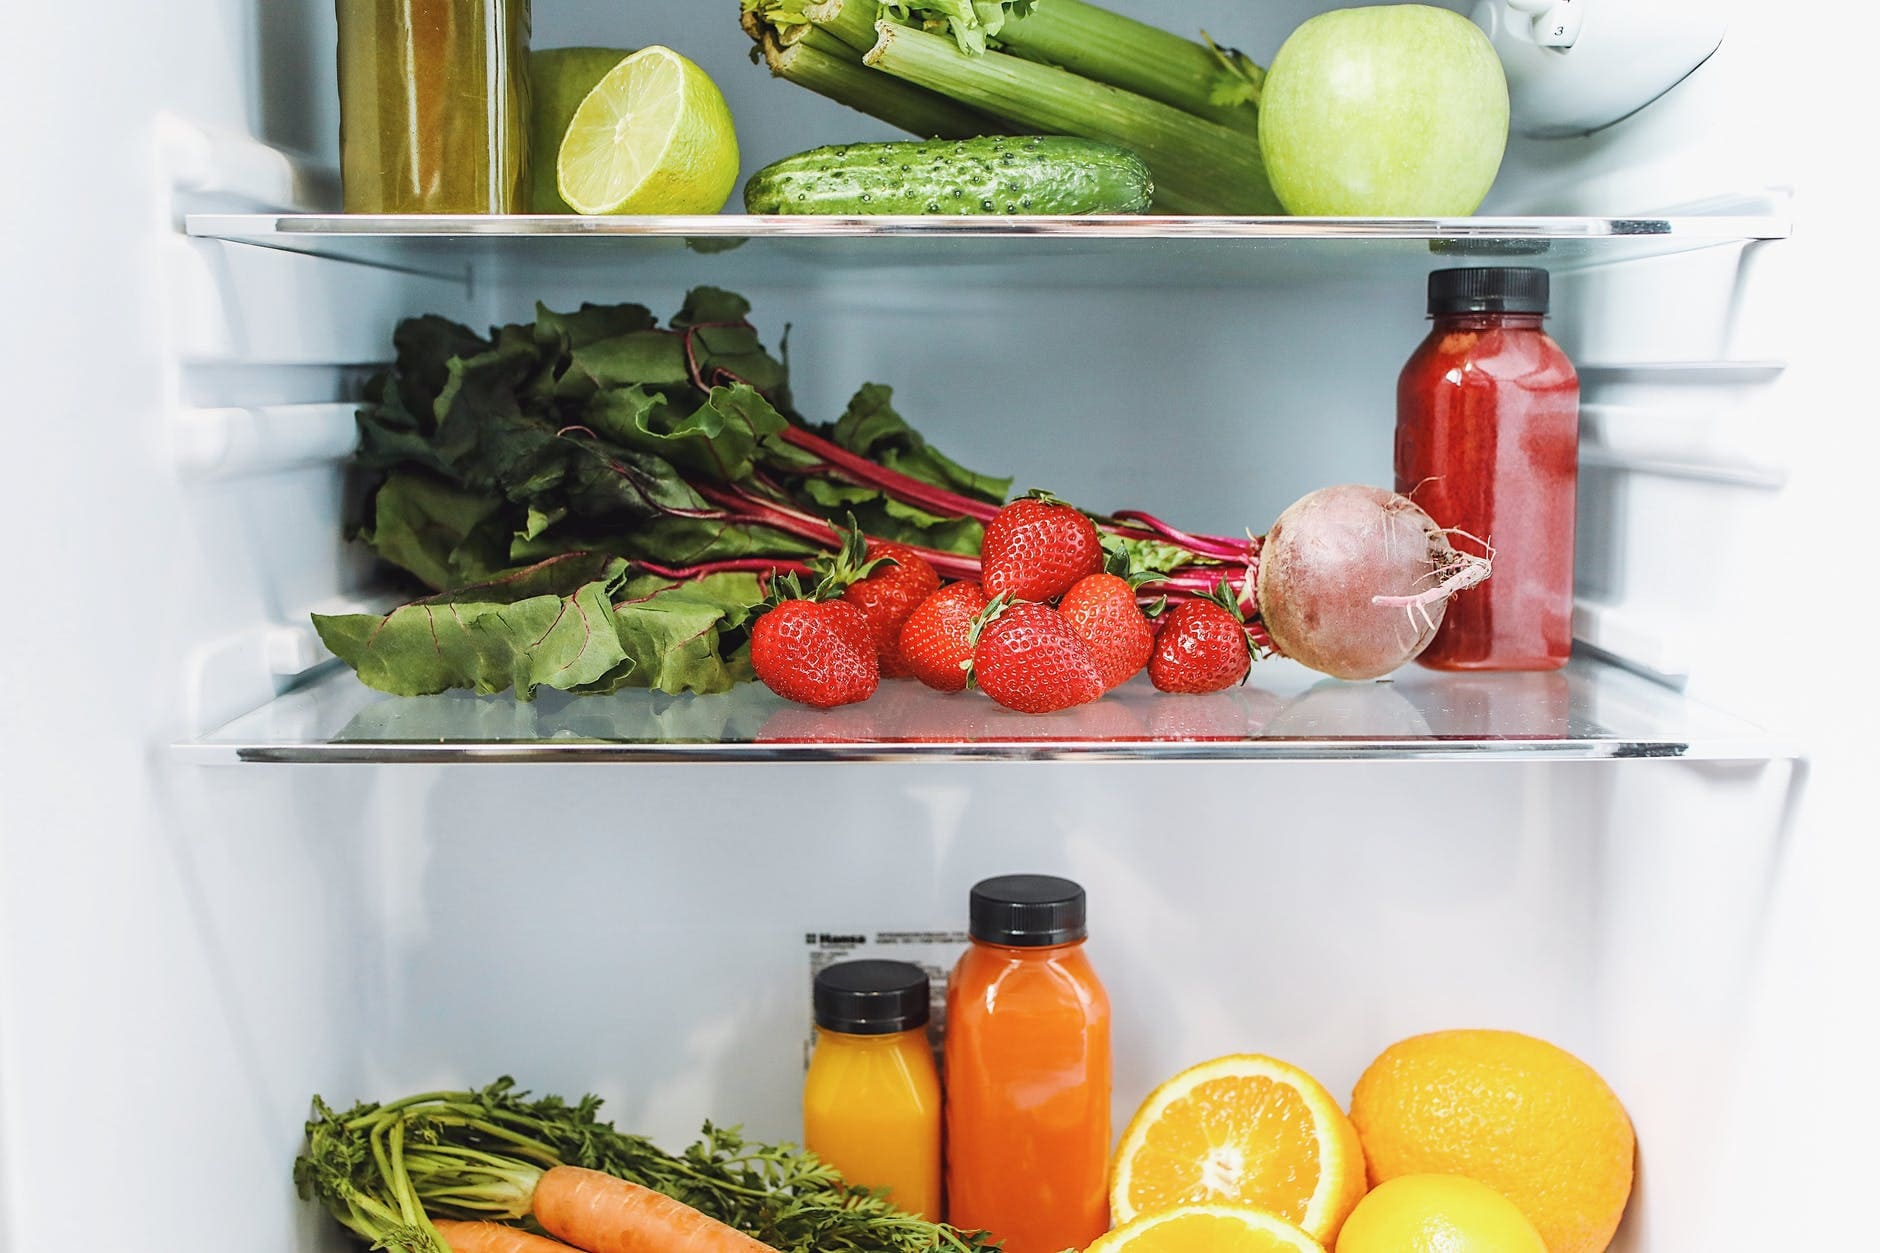 Shelf life of vegetables and fruits in the refrigerator